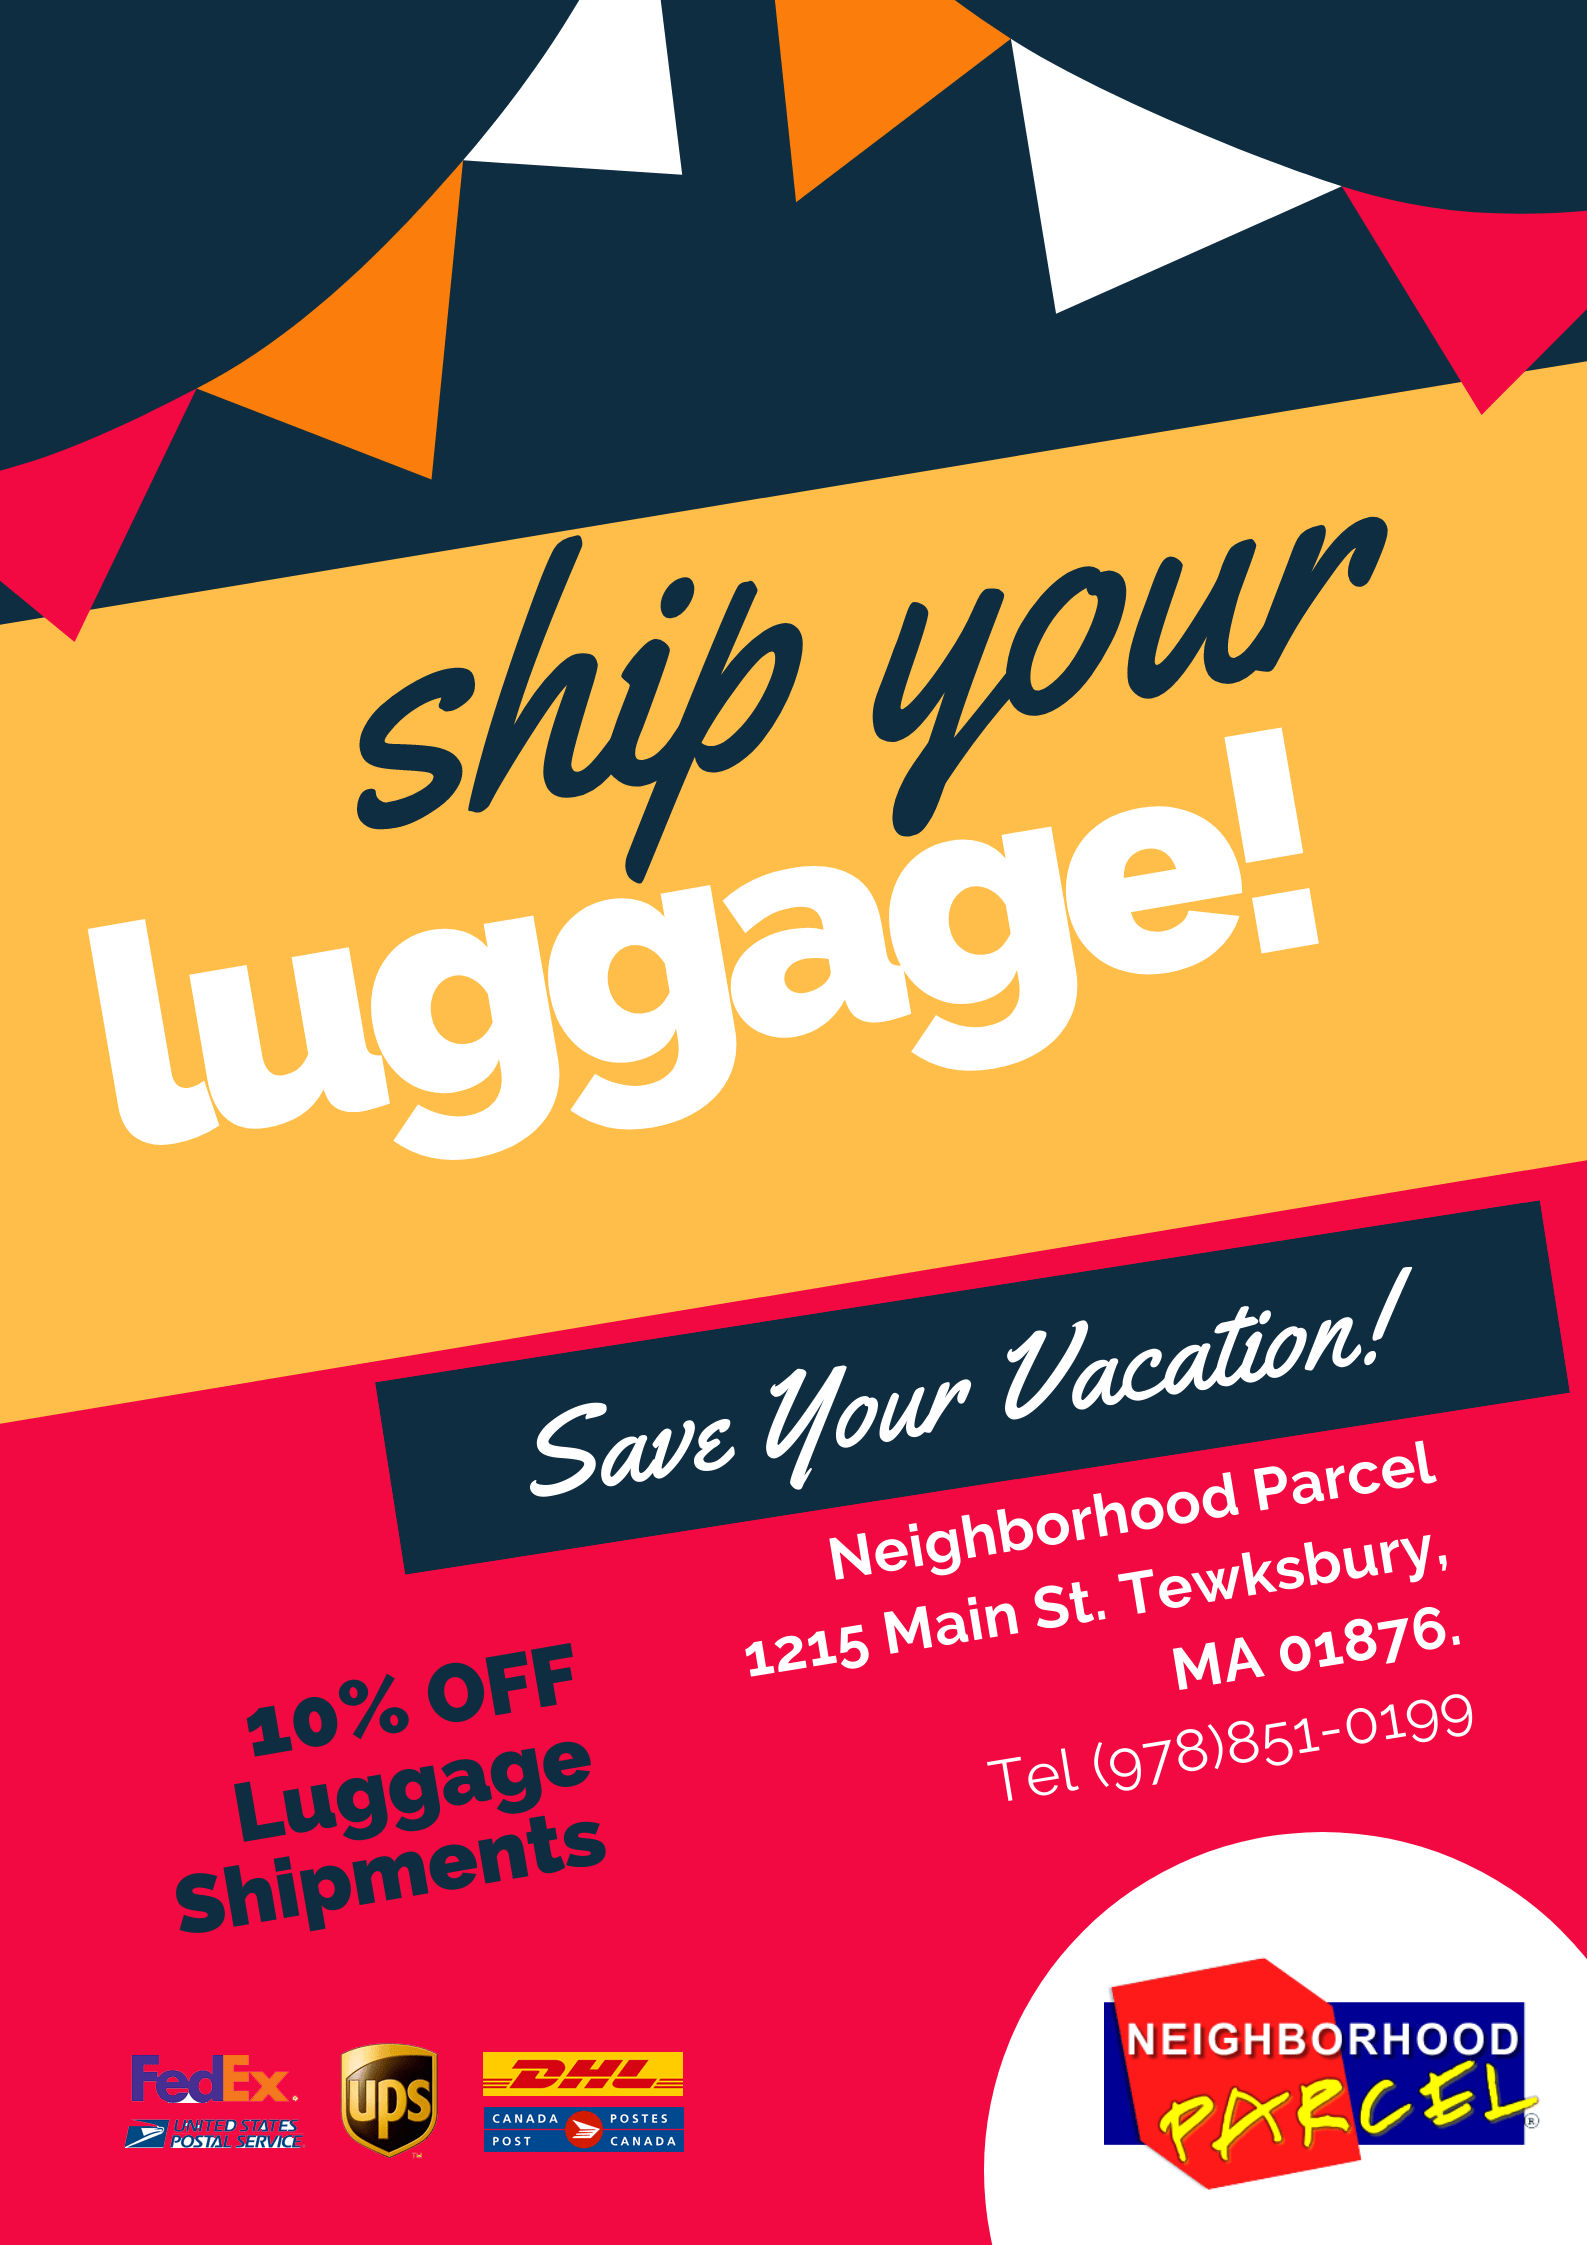 Luggage shipping service company Near Boston MA